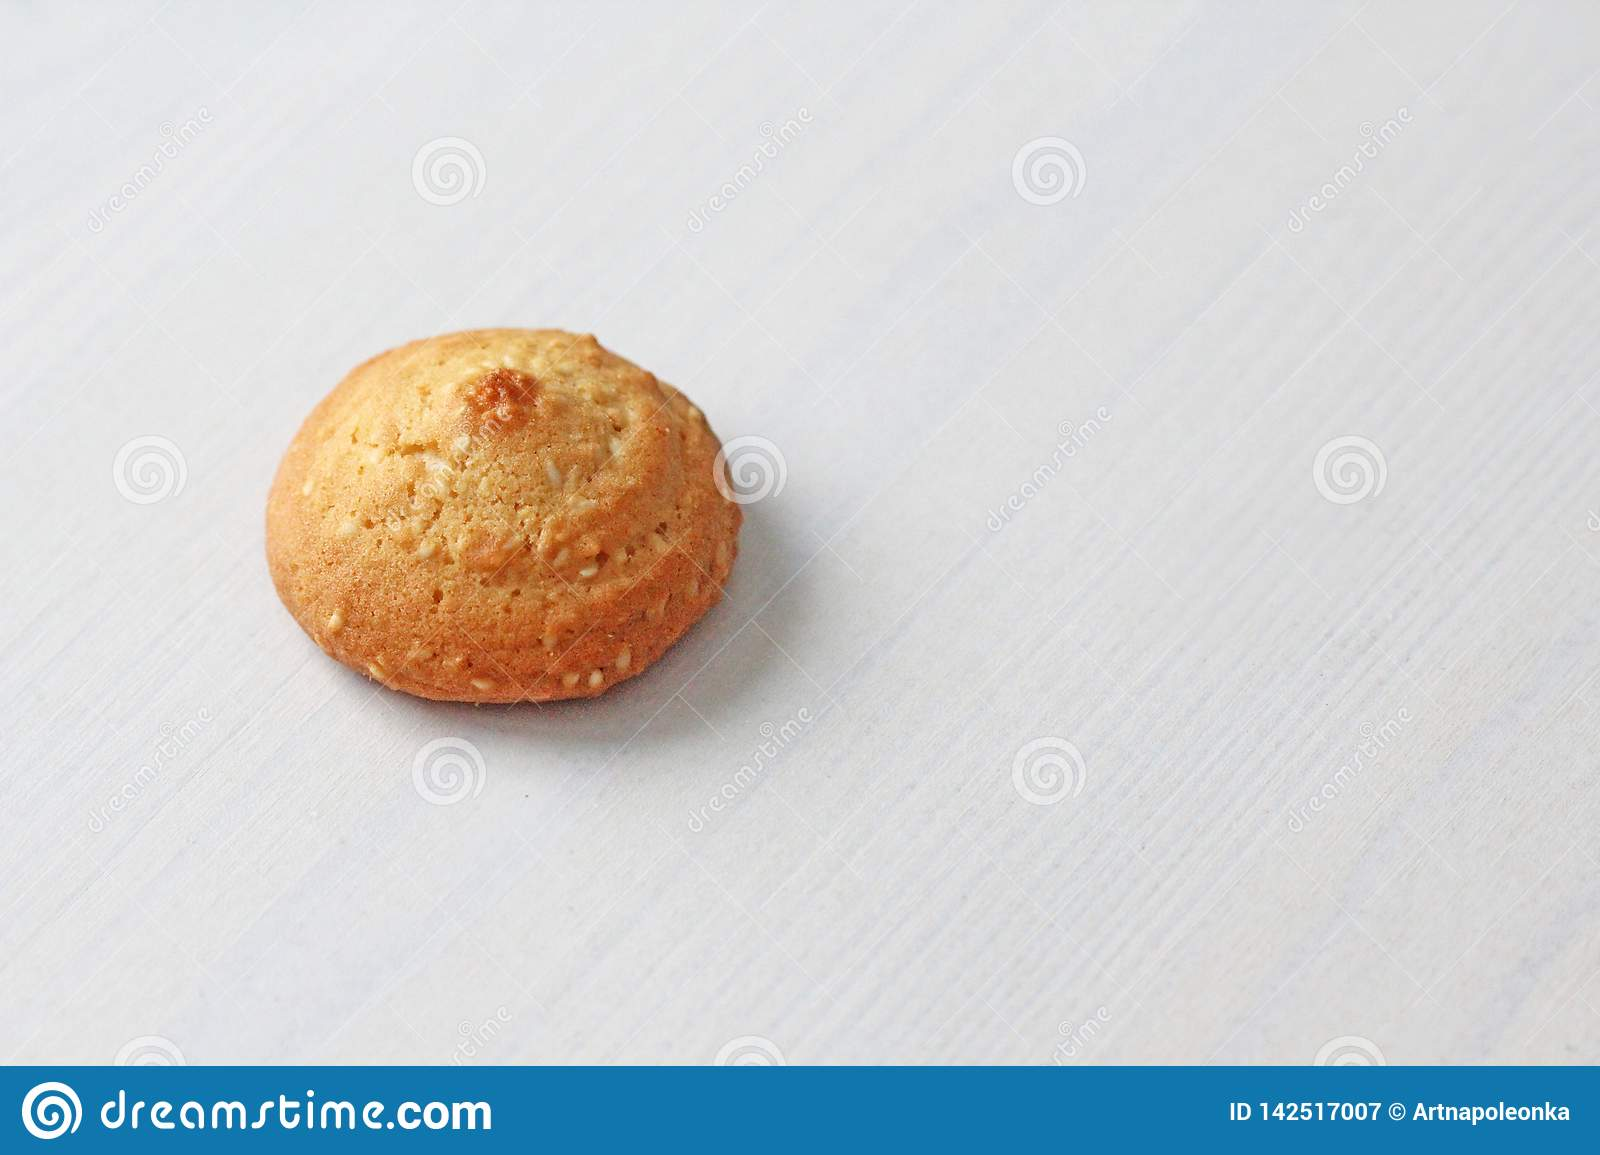 Cookies on a white background, similar to female nipples. Sexy nipples in the form of cookies. Humor, double meaning